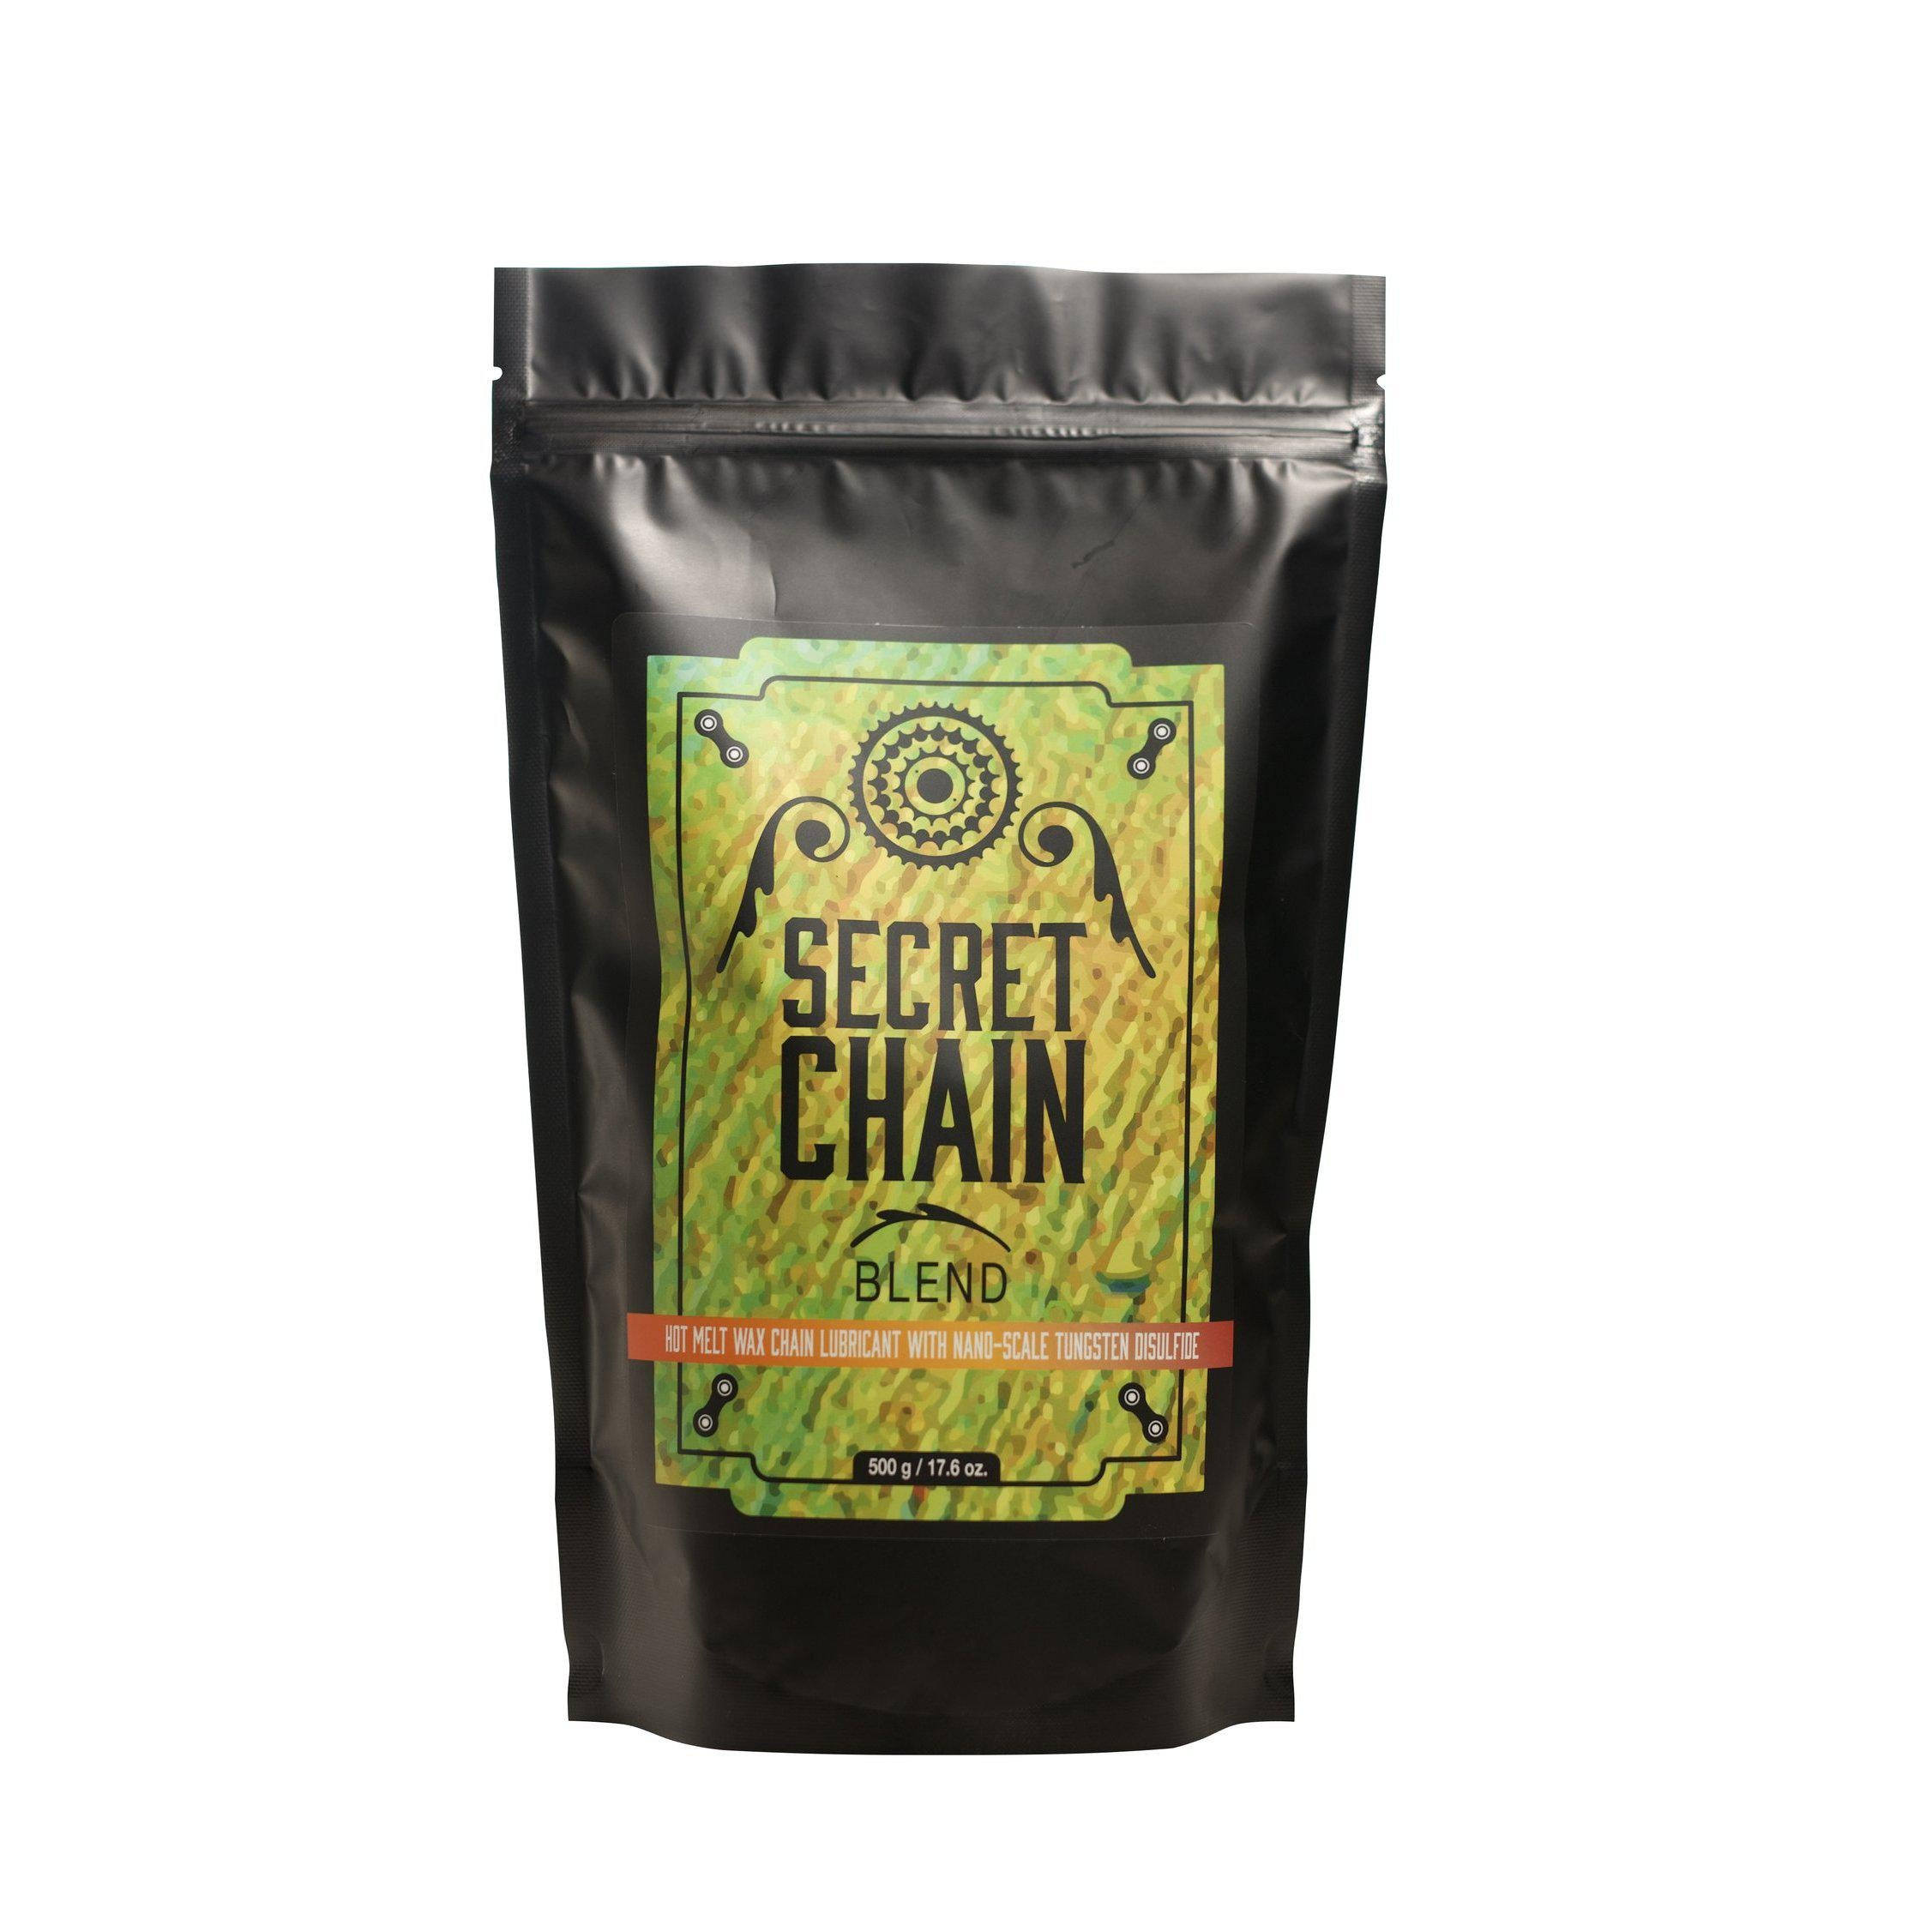 Silca-Secret Chain Blend Hot Melt Wax-Pouch-500g-SIAMAC016ASY0100-saddleback-elite-performance-cycling